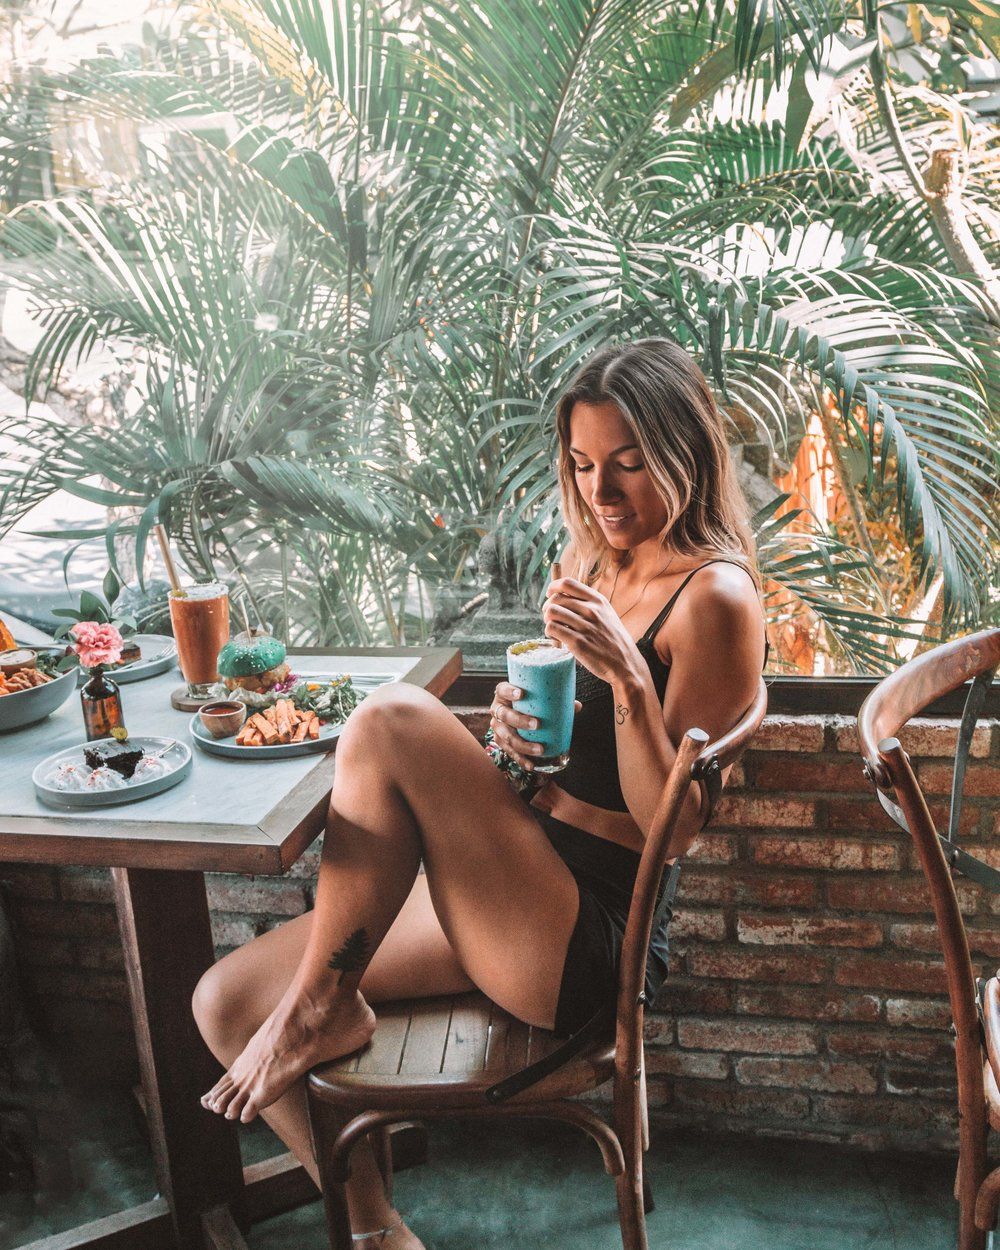 best places eat vegan canggu bali delicious food smoothies burgers vegetarian food beautiful photography freeoversea instagrammable